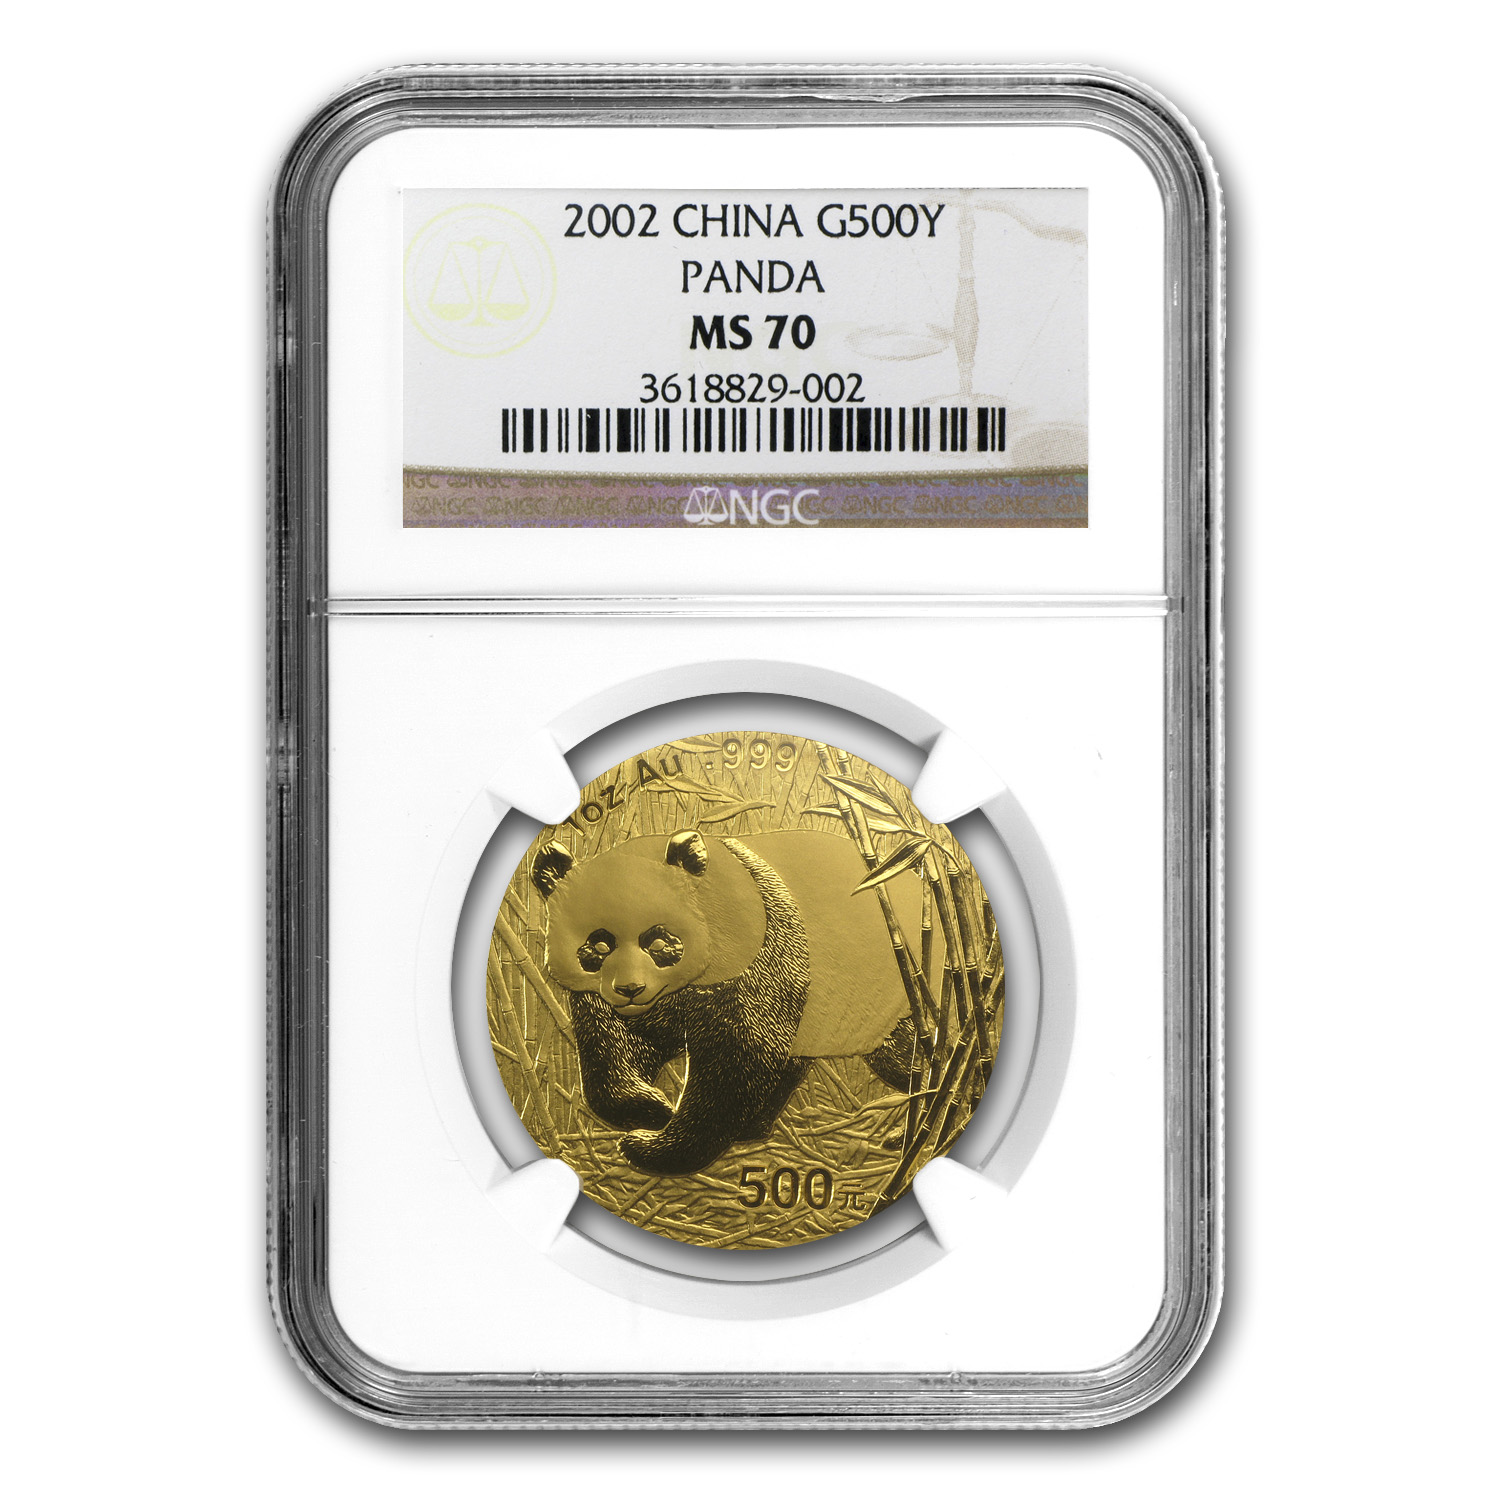 2002 China 1 oz Gold Panda MS-70 NGC